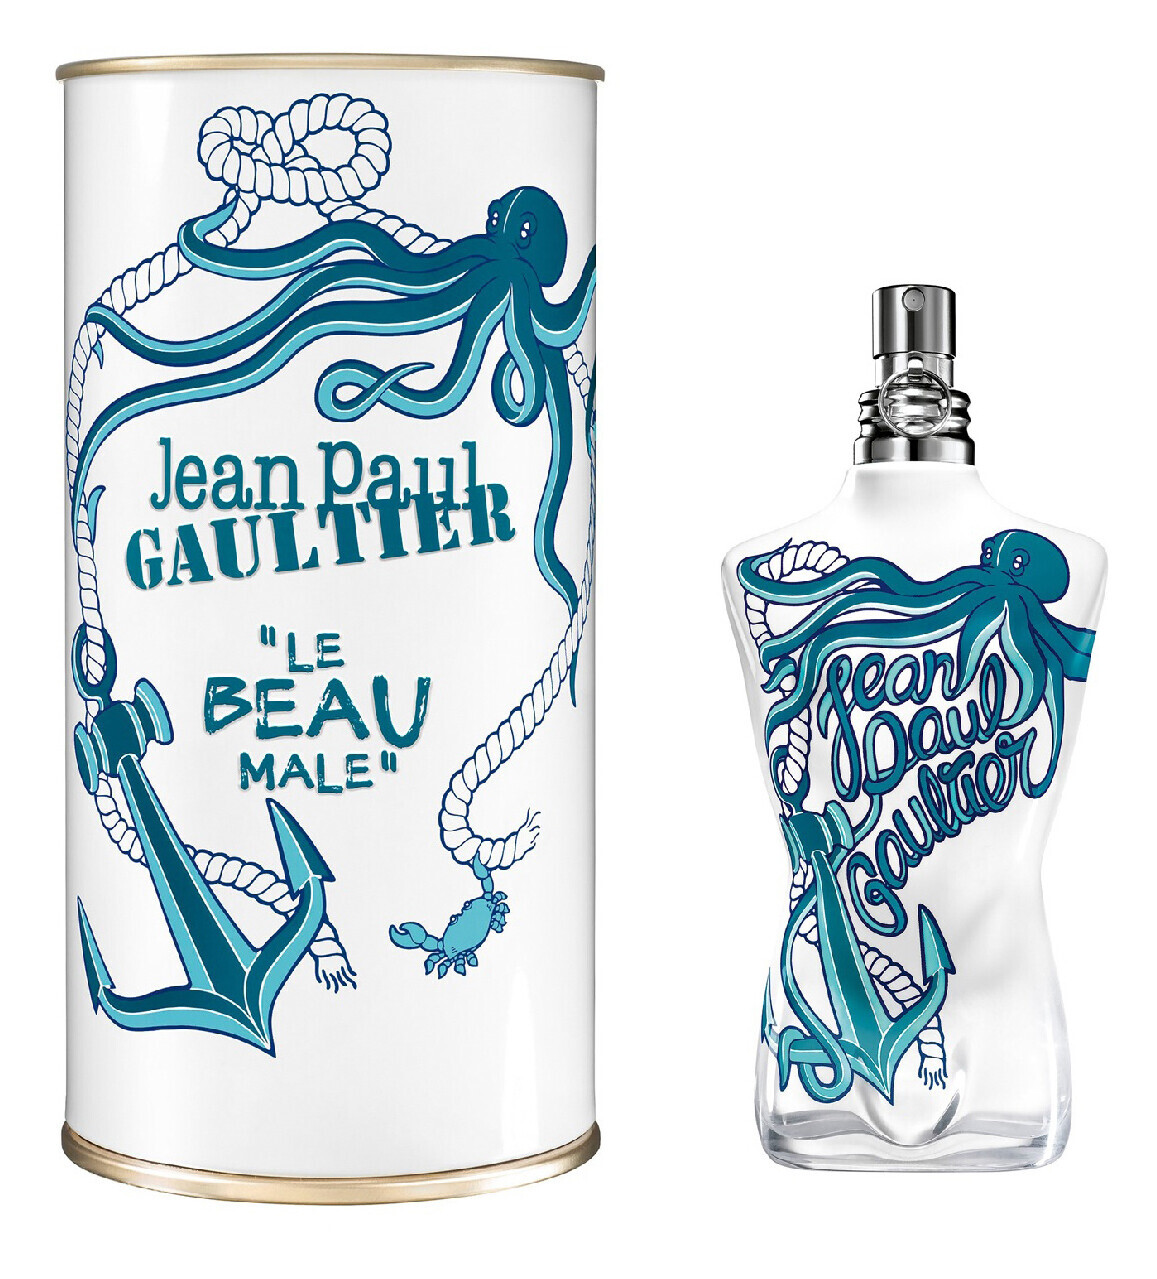 Jean Paul Gaultier Le Beau Male Summer 2014